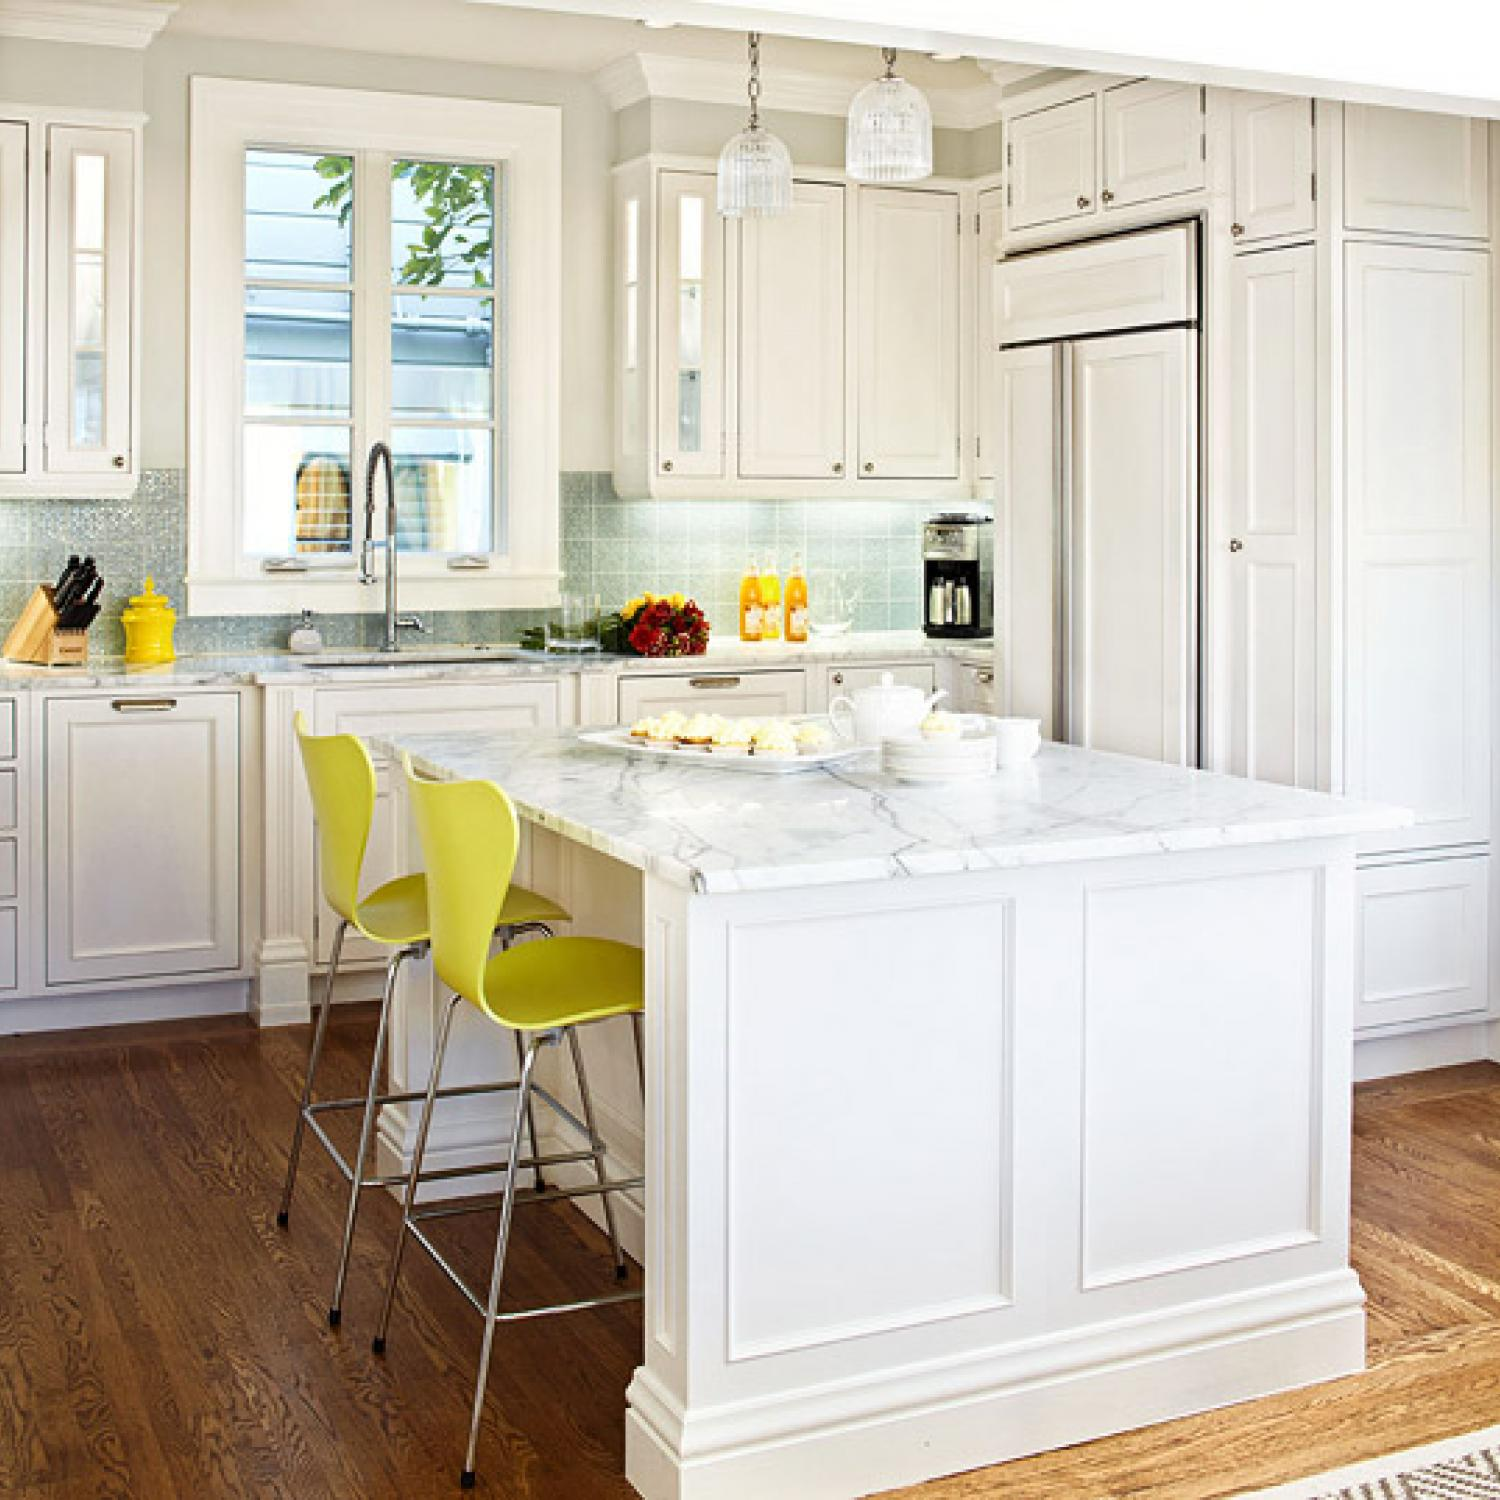 Design ideas for white kitchens traditional home White home design ideas